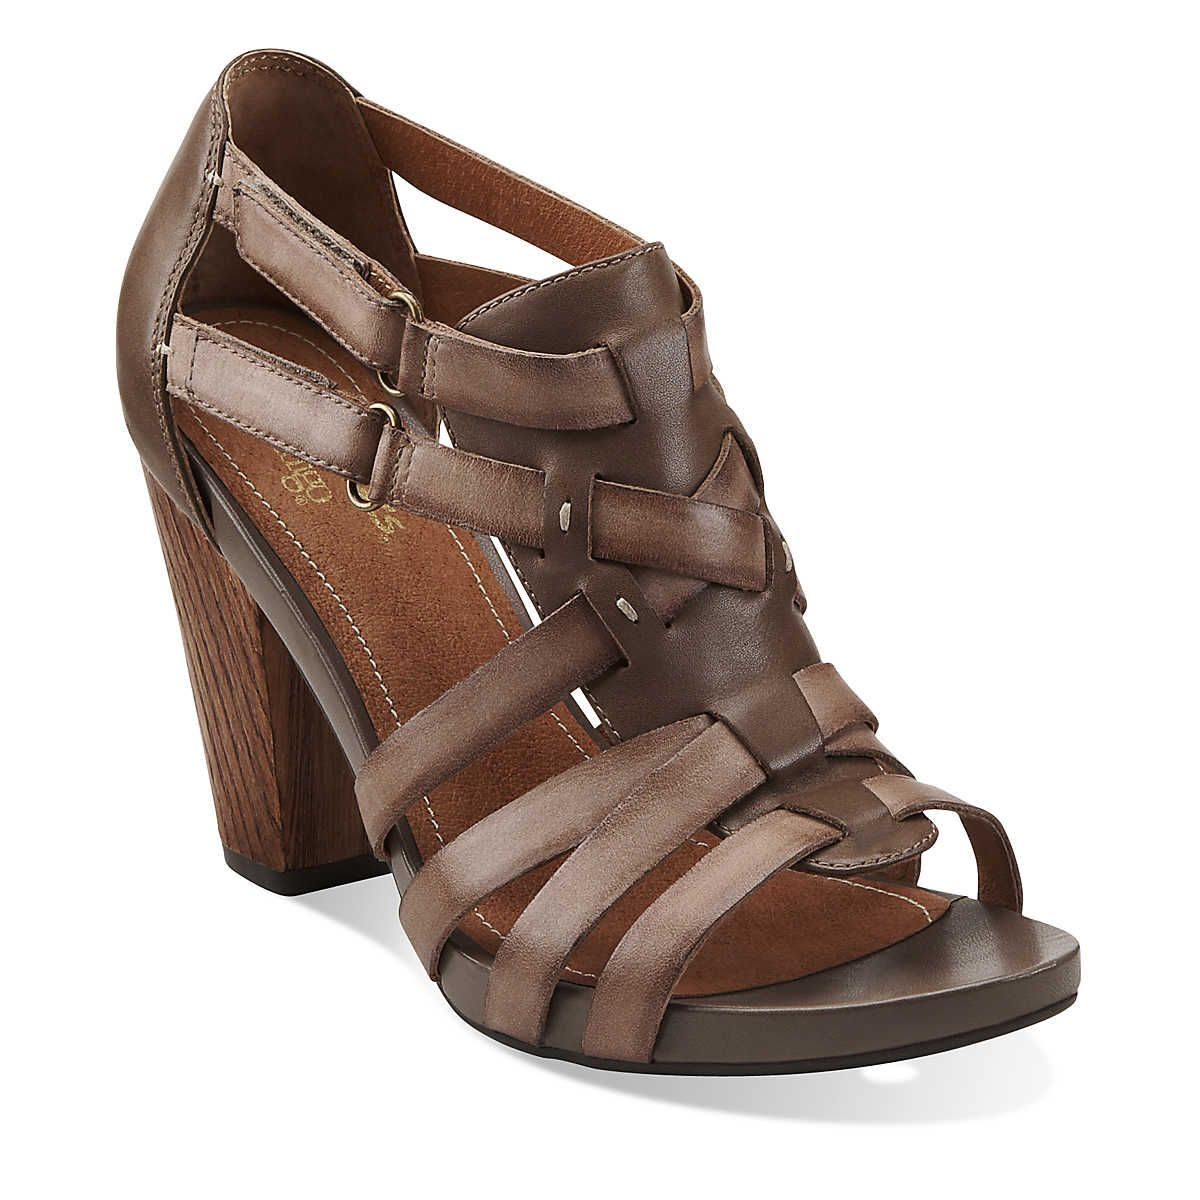 Rosa Hyde in Dark Taupe Leather - Women s Sandals from Clarks - Women s  Wedges